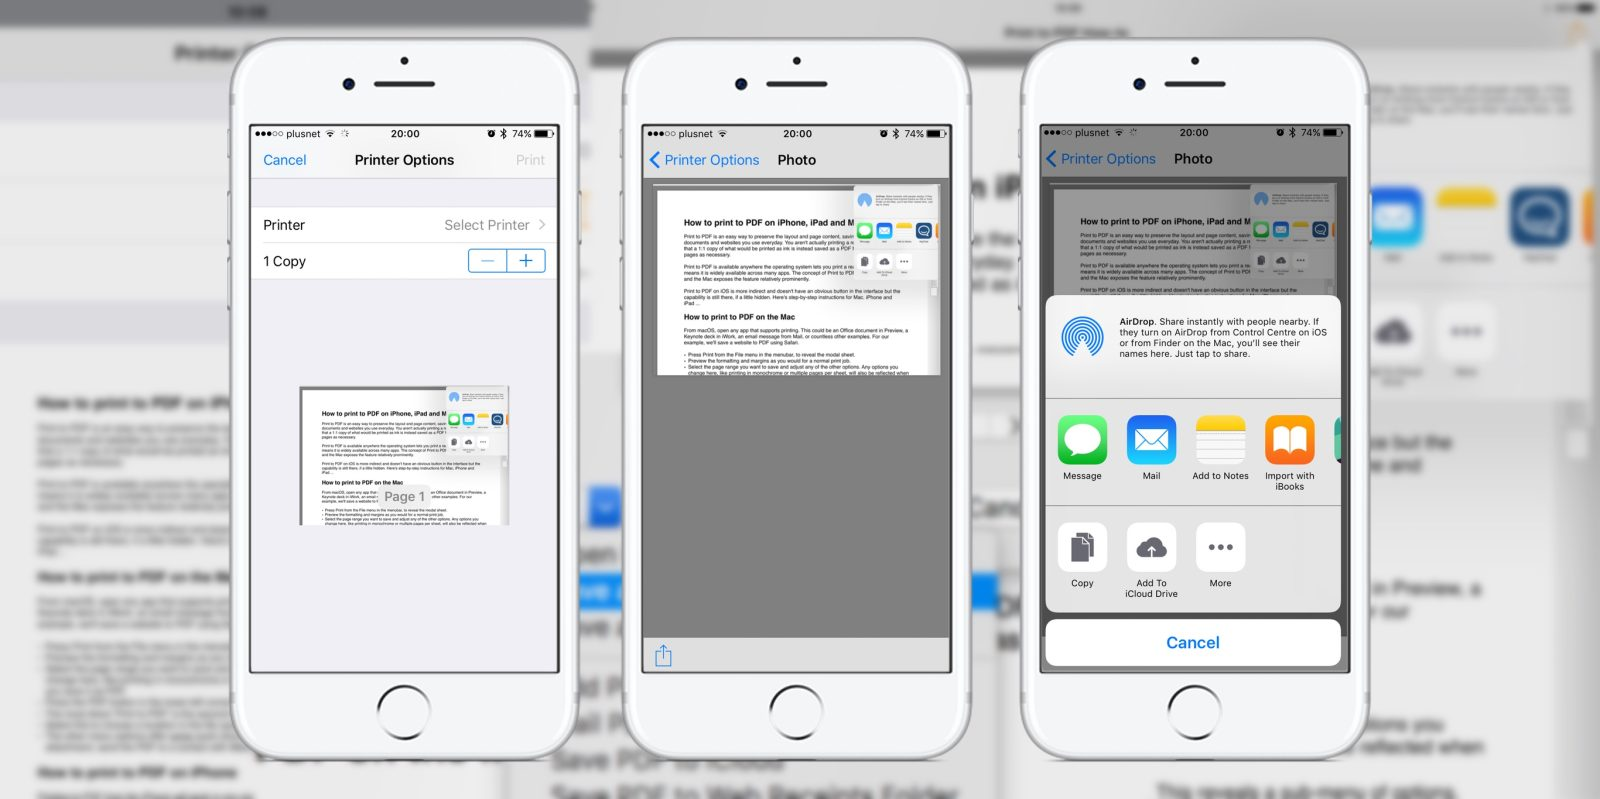 How To Airdrop From Os X Yosemite To Iphone 17ments Itunes Radio